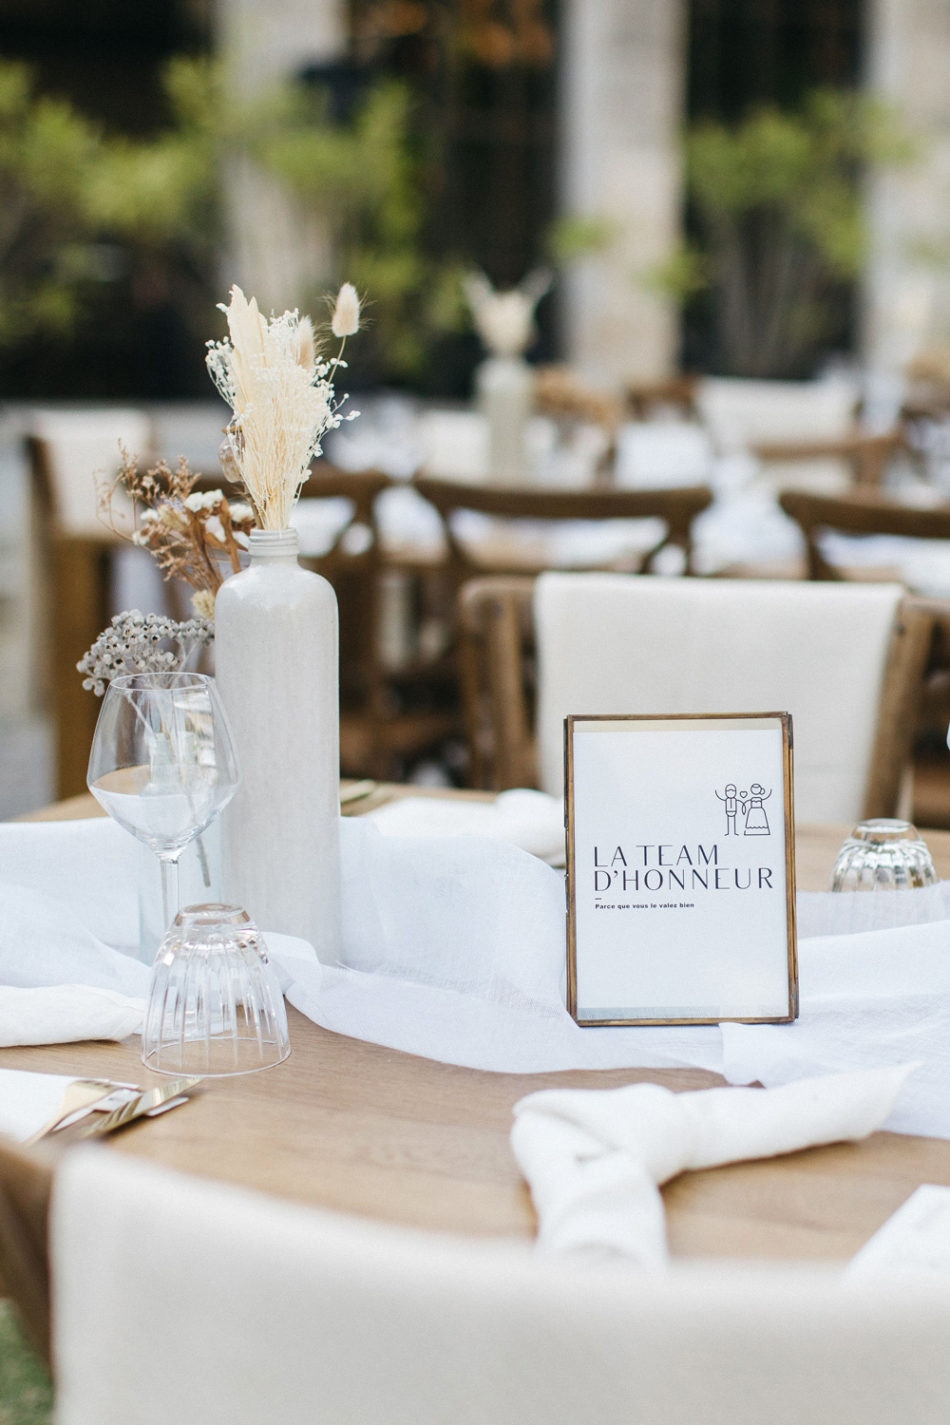 un mariage simple authentique, deco de table mariage blanc